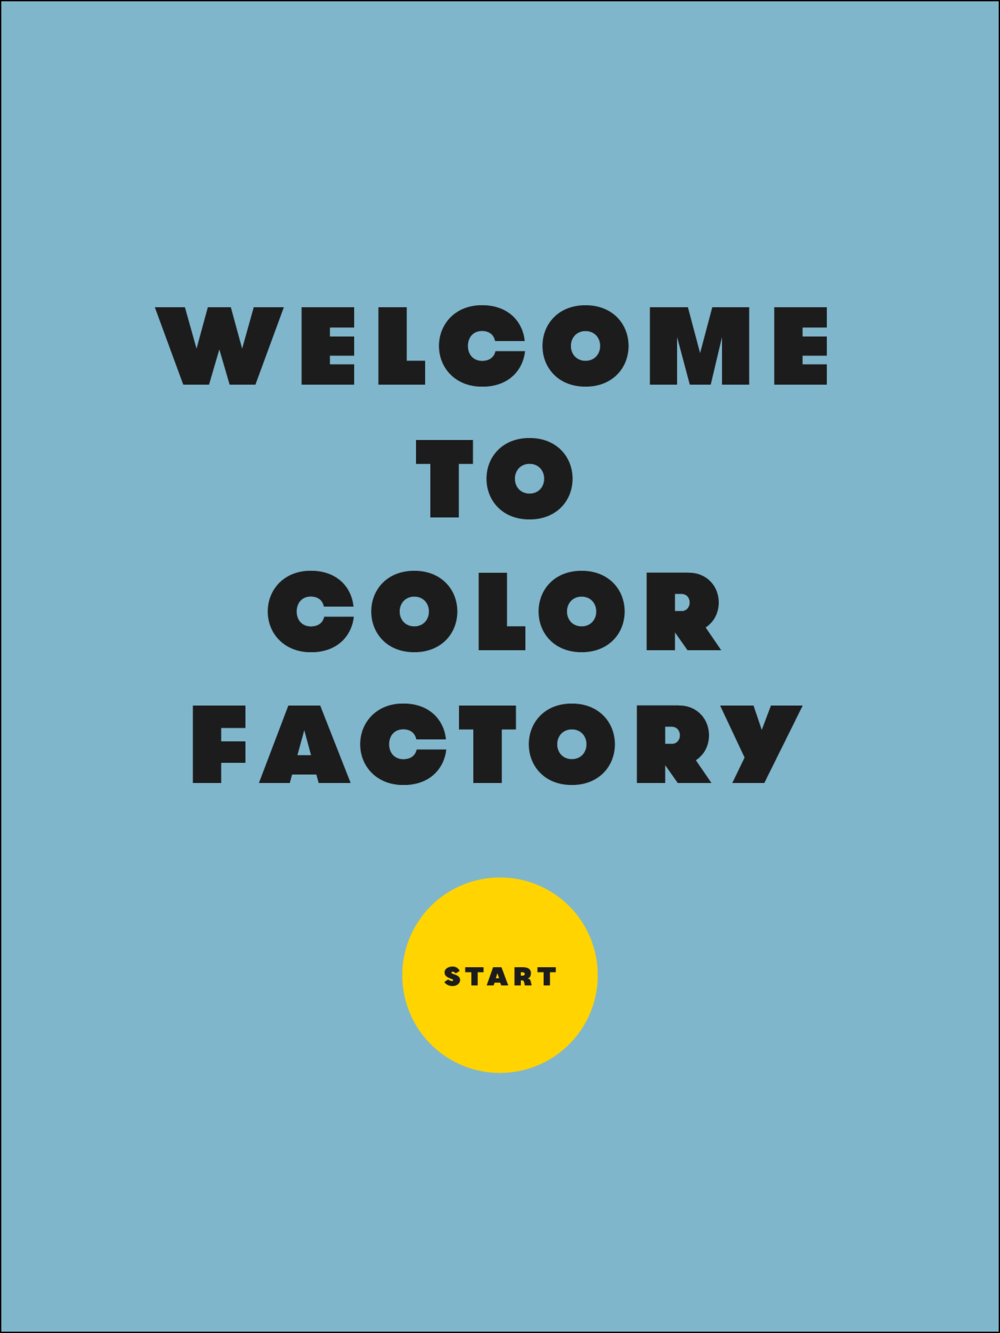 colorfactory_cardregistration_20180521-01.png